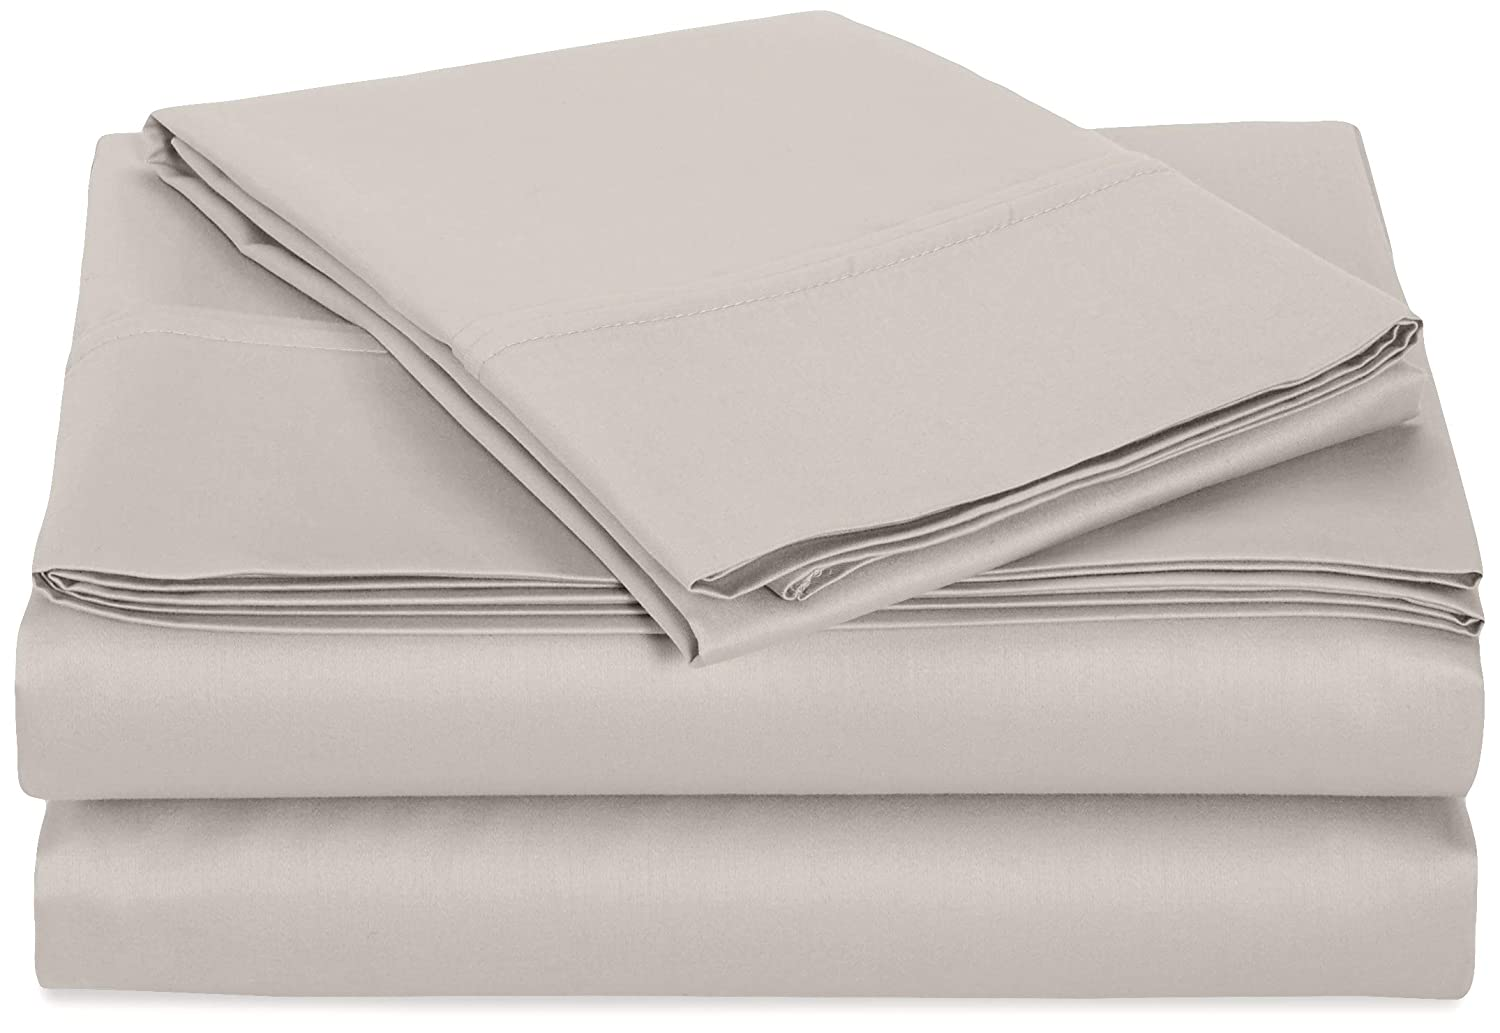 AmazonBasics 400 Thread Count Sheet Set, 100% Cotton, Sateen Finish - Twin, White ICIL400MXLTWWH